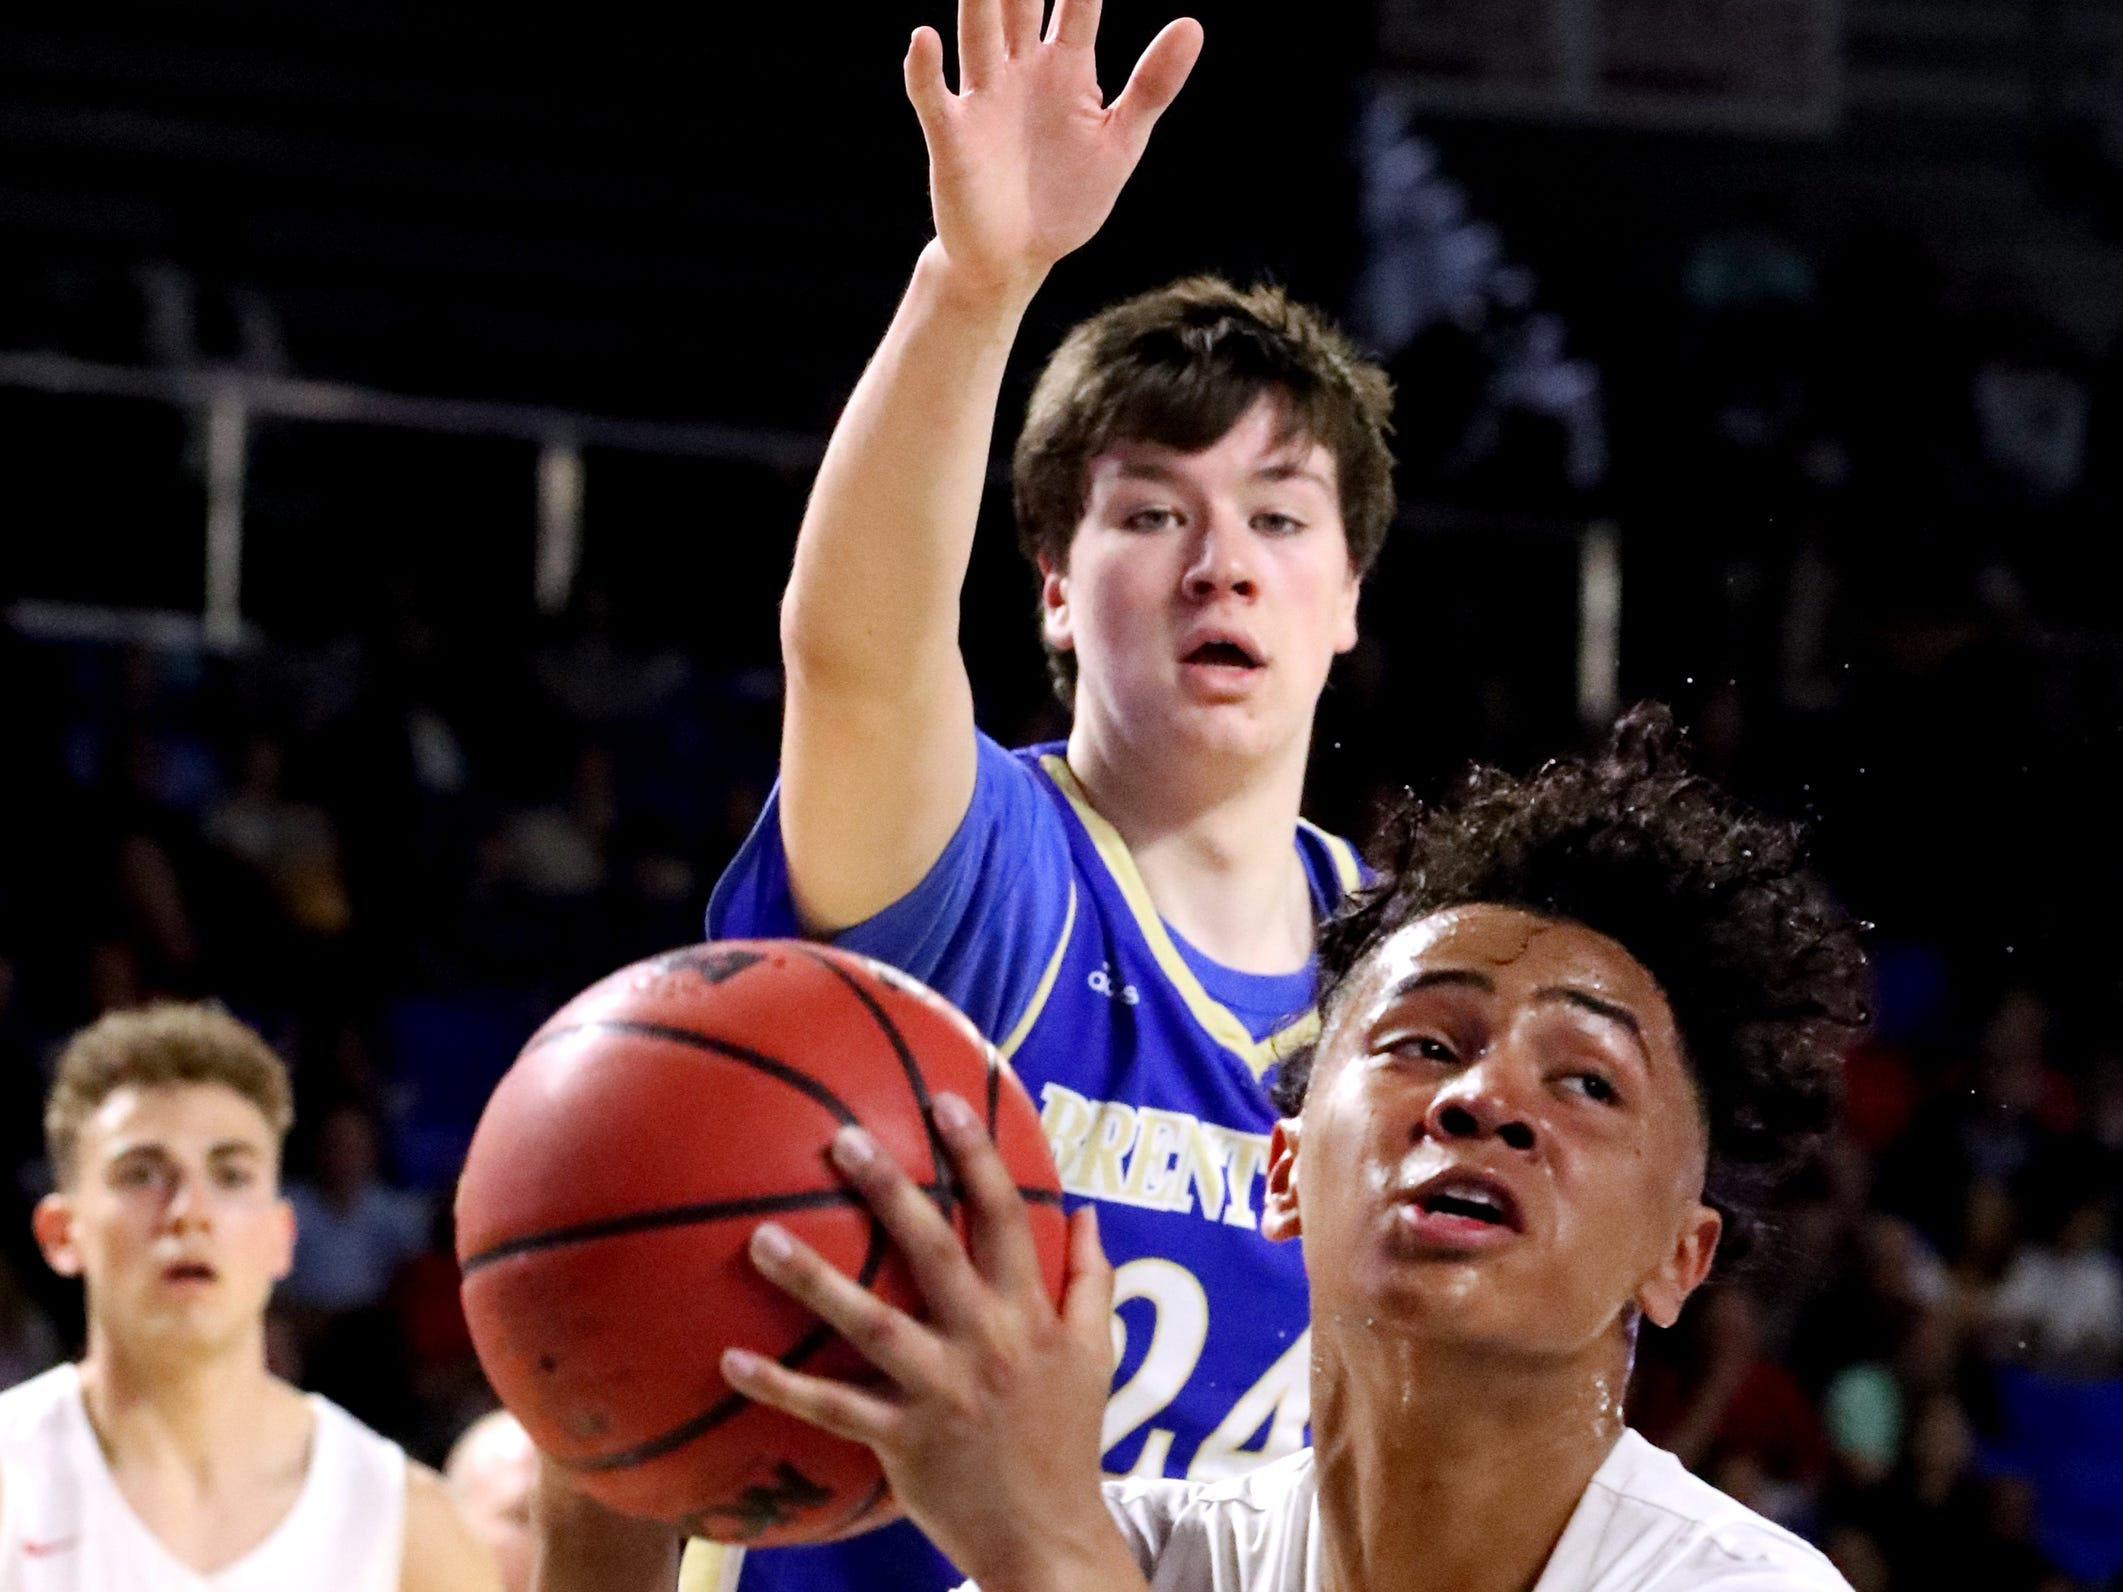 Oakland's Jaden Jamison (24) goes up for a shot as Brentwood's Cole Massey (24) guards him during the quarterfinal round of the TSSAA Class AAA Boys State Tournament, on Thursday, March 14, 2019, at Murphy Center in Murfreesboro, Tenn.